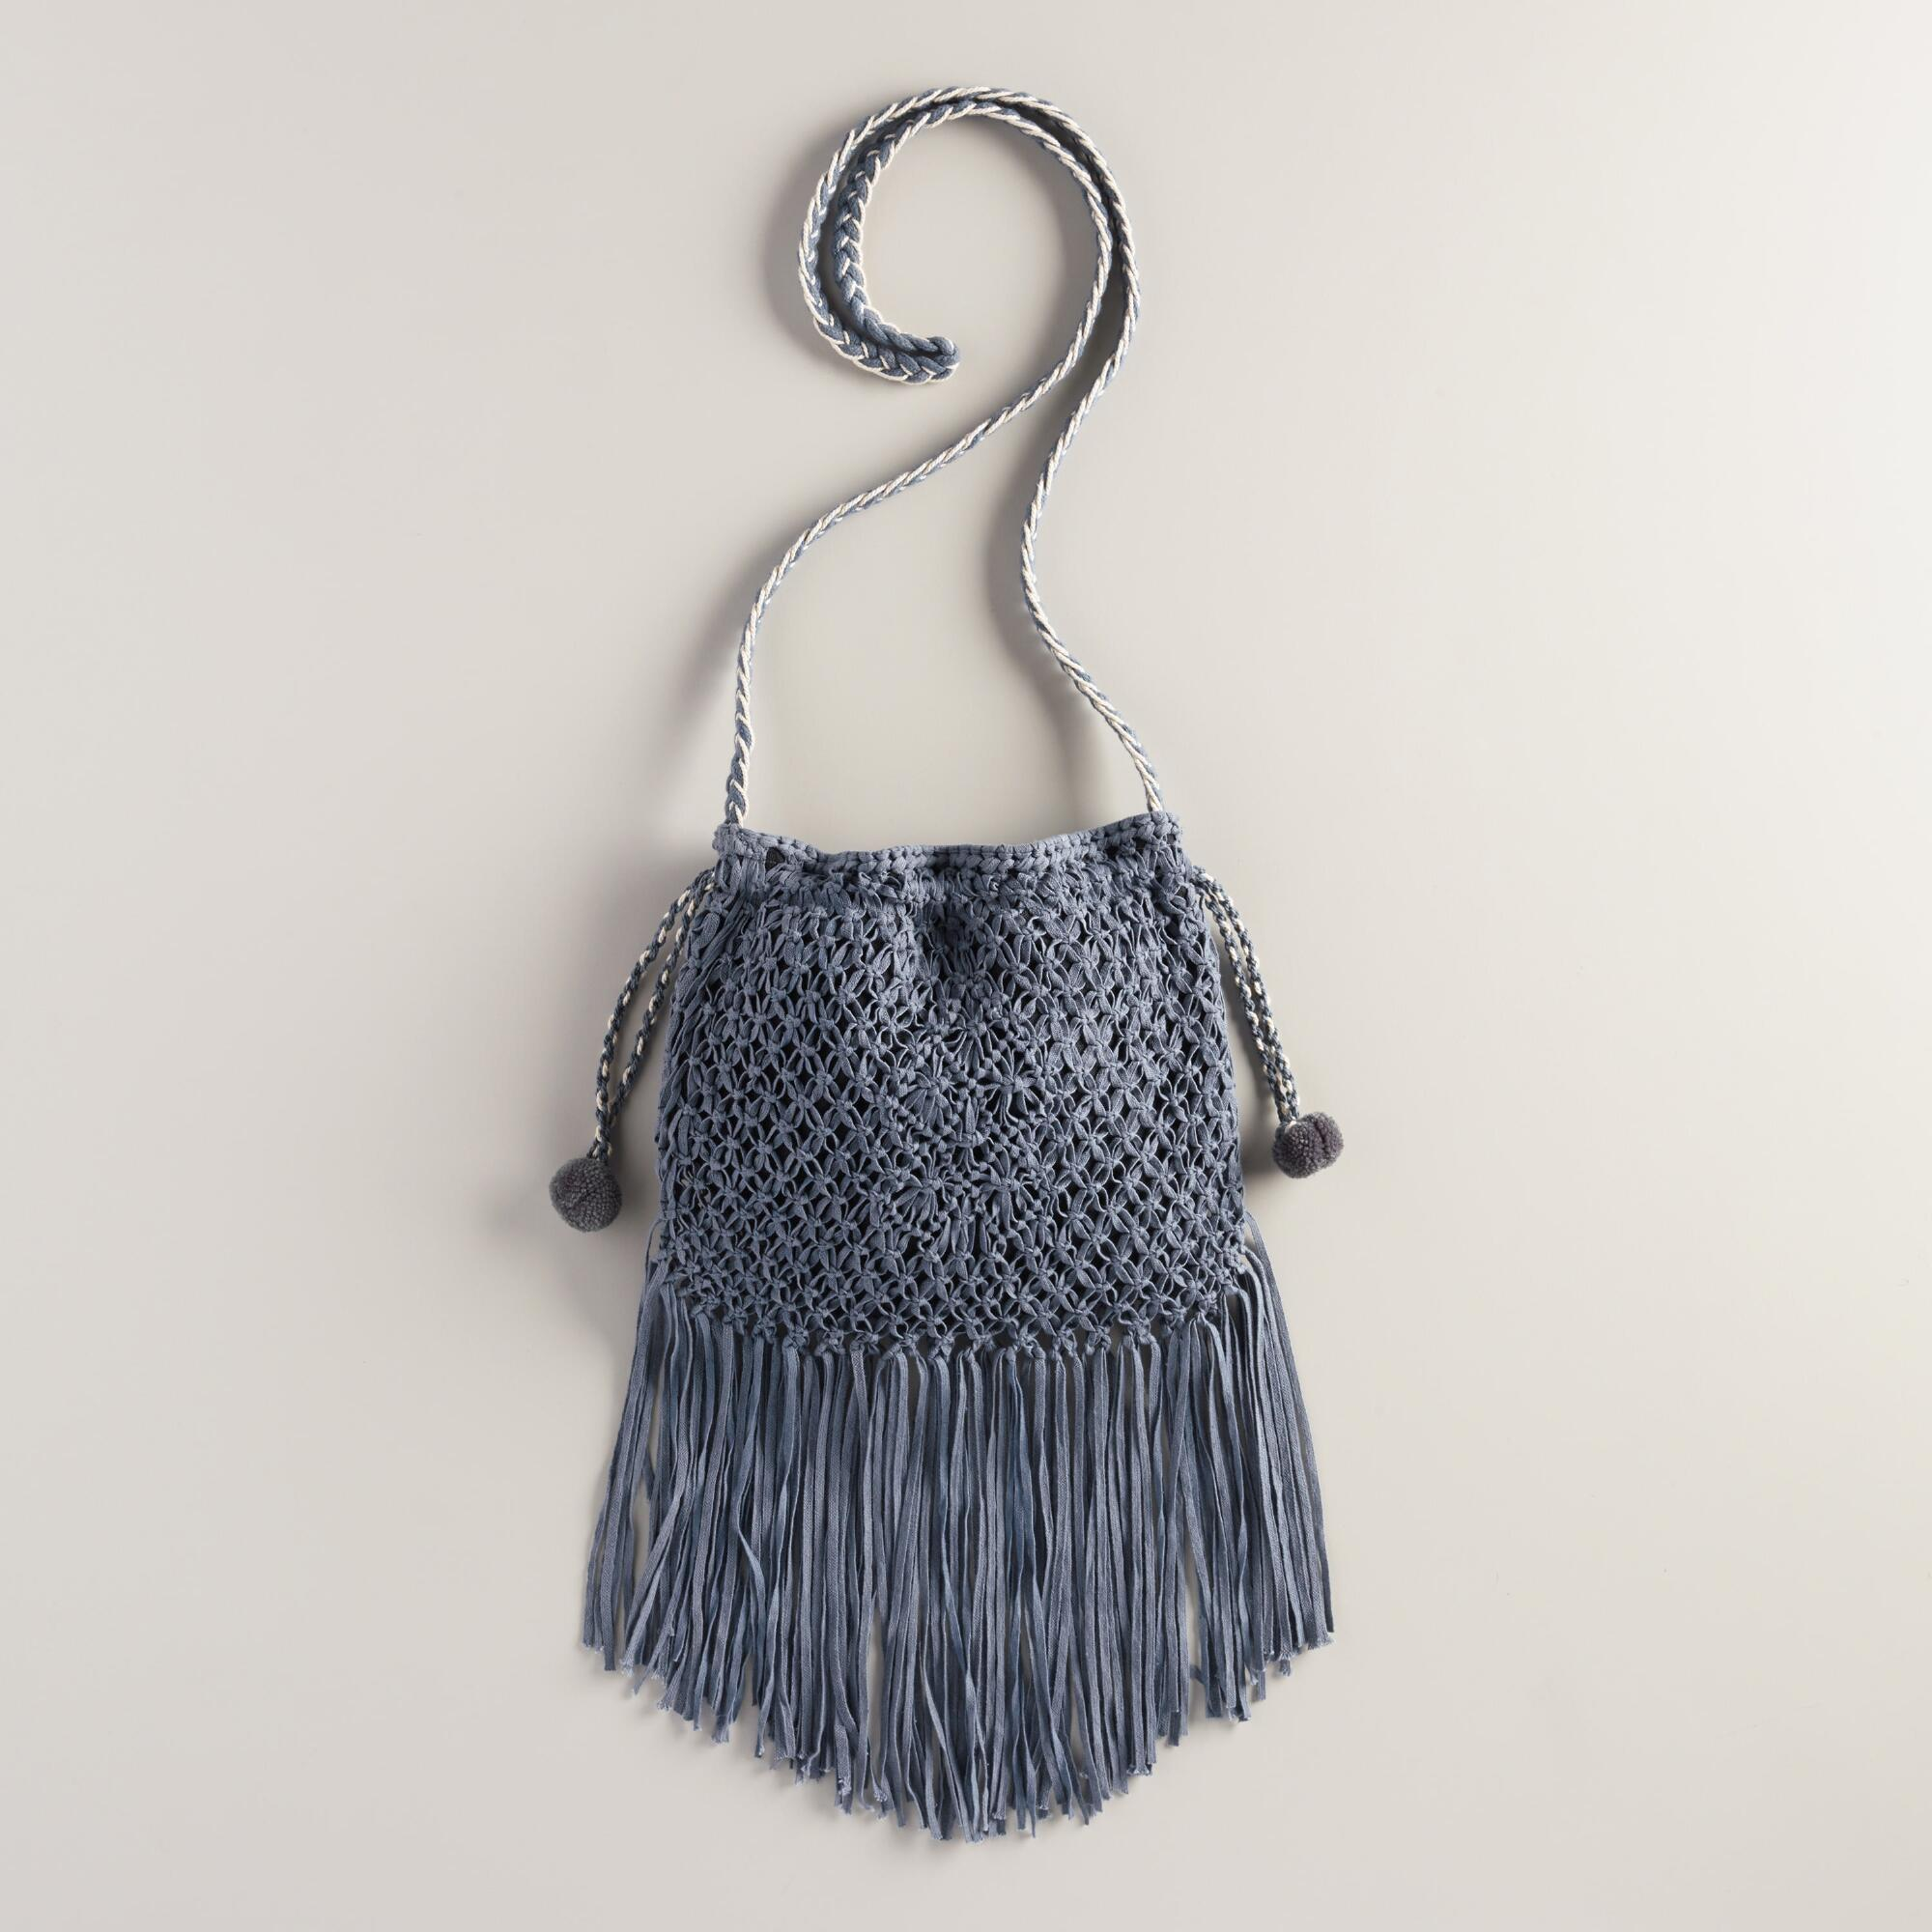 Crochet Fringe Bag : Blue Crochet Crossbody Bag with Fringe World Market